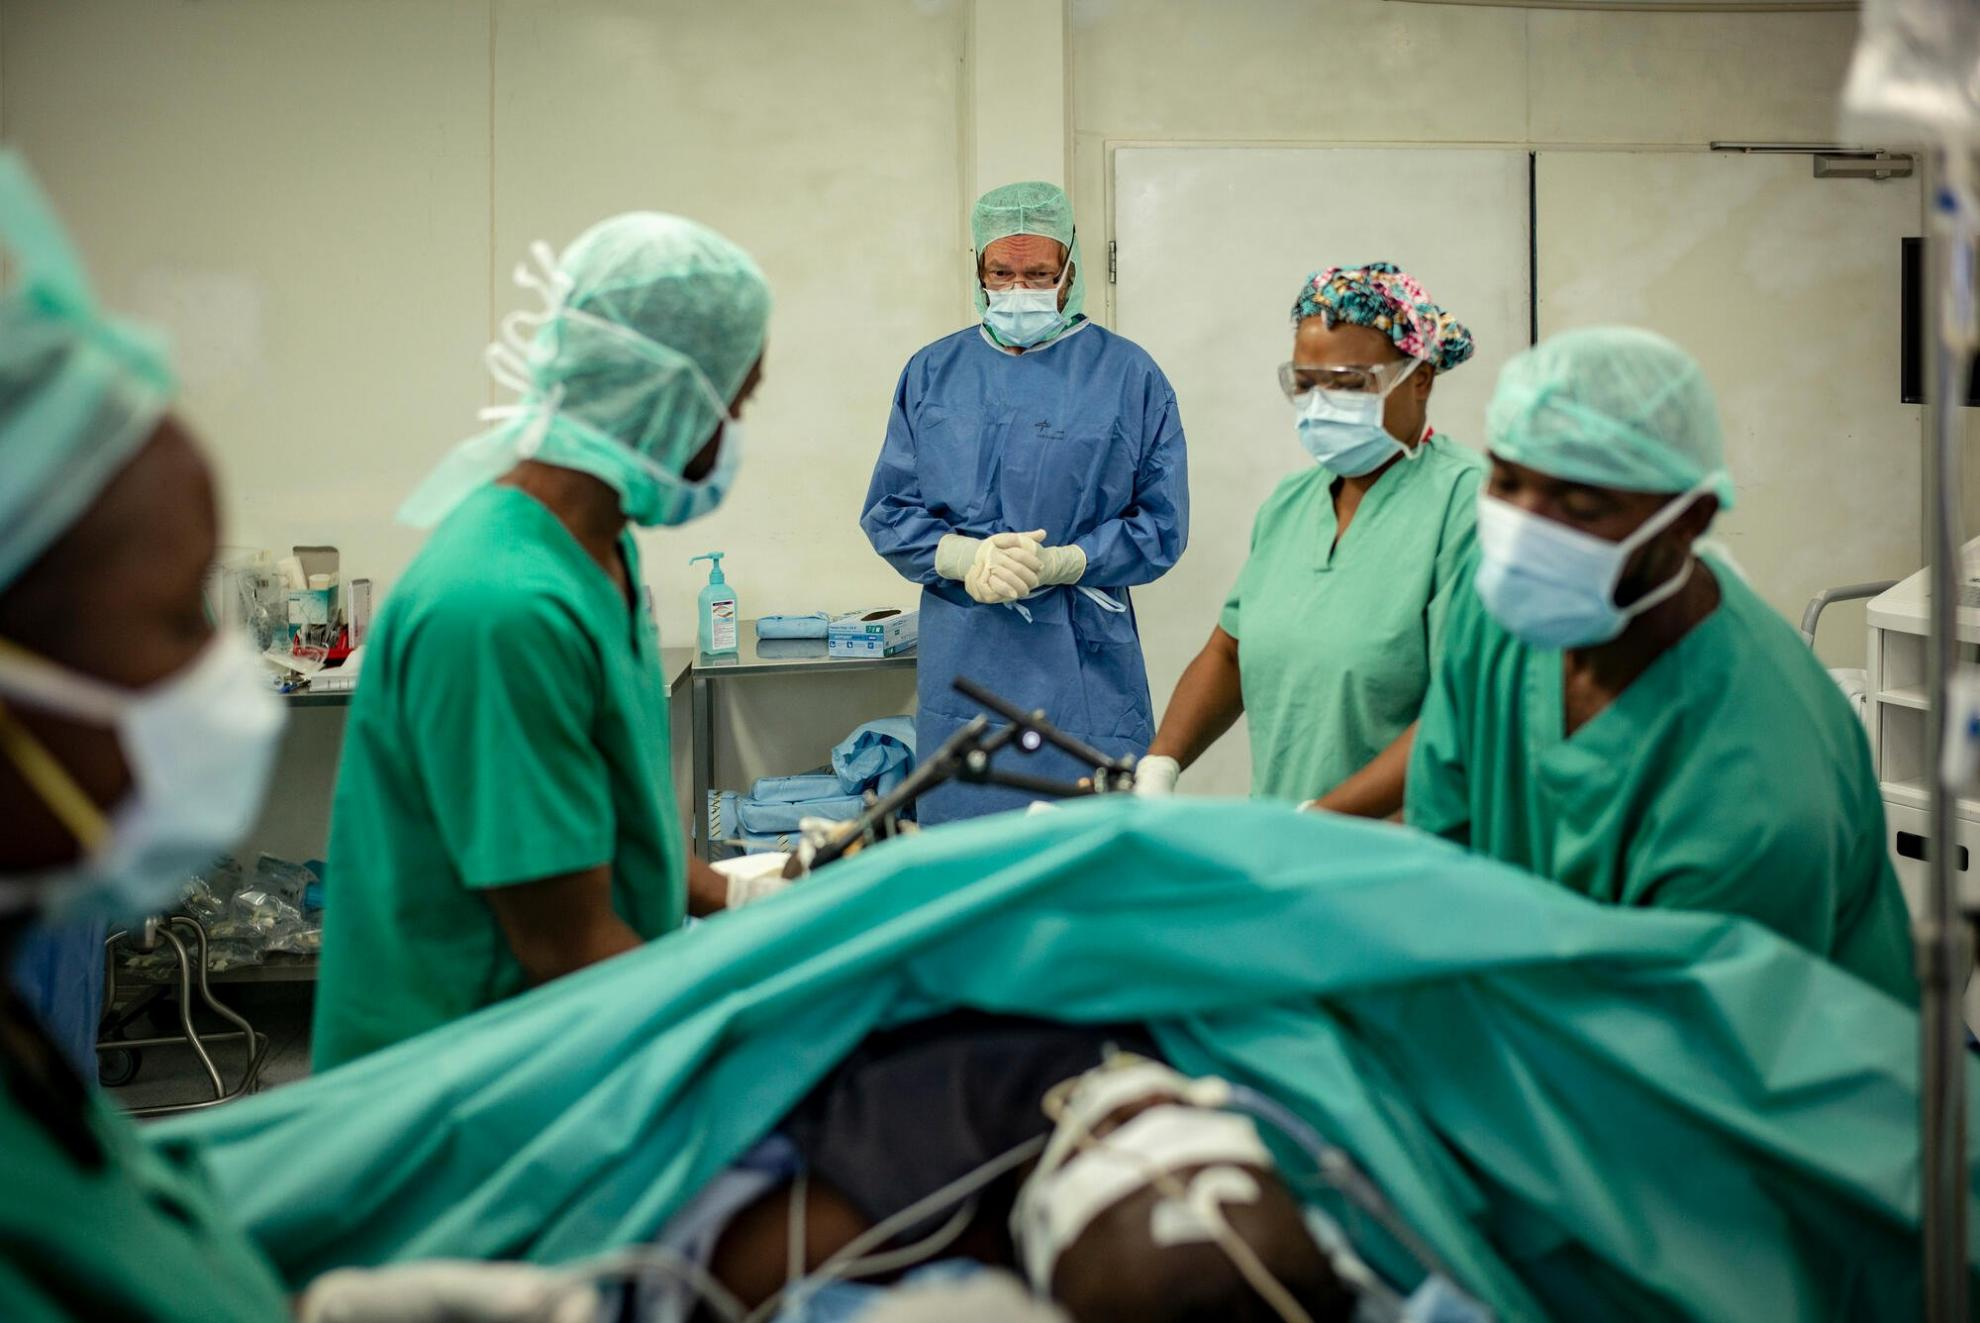 An MSF surgical team at Tabarre trauma hospital in Haiti prepare to treat a patient